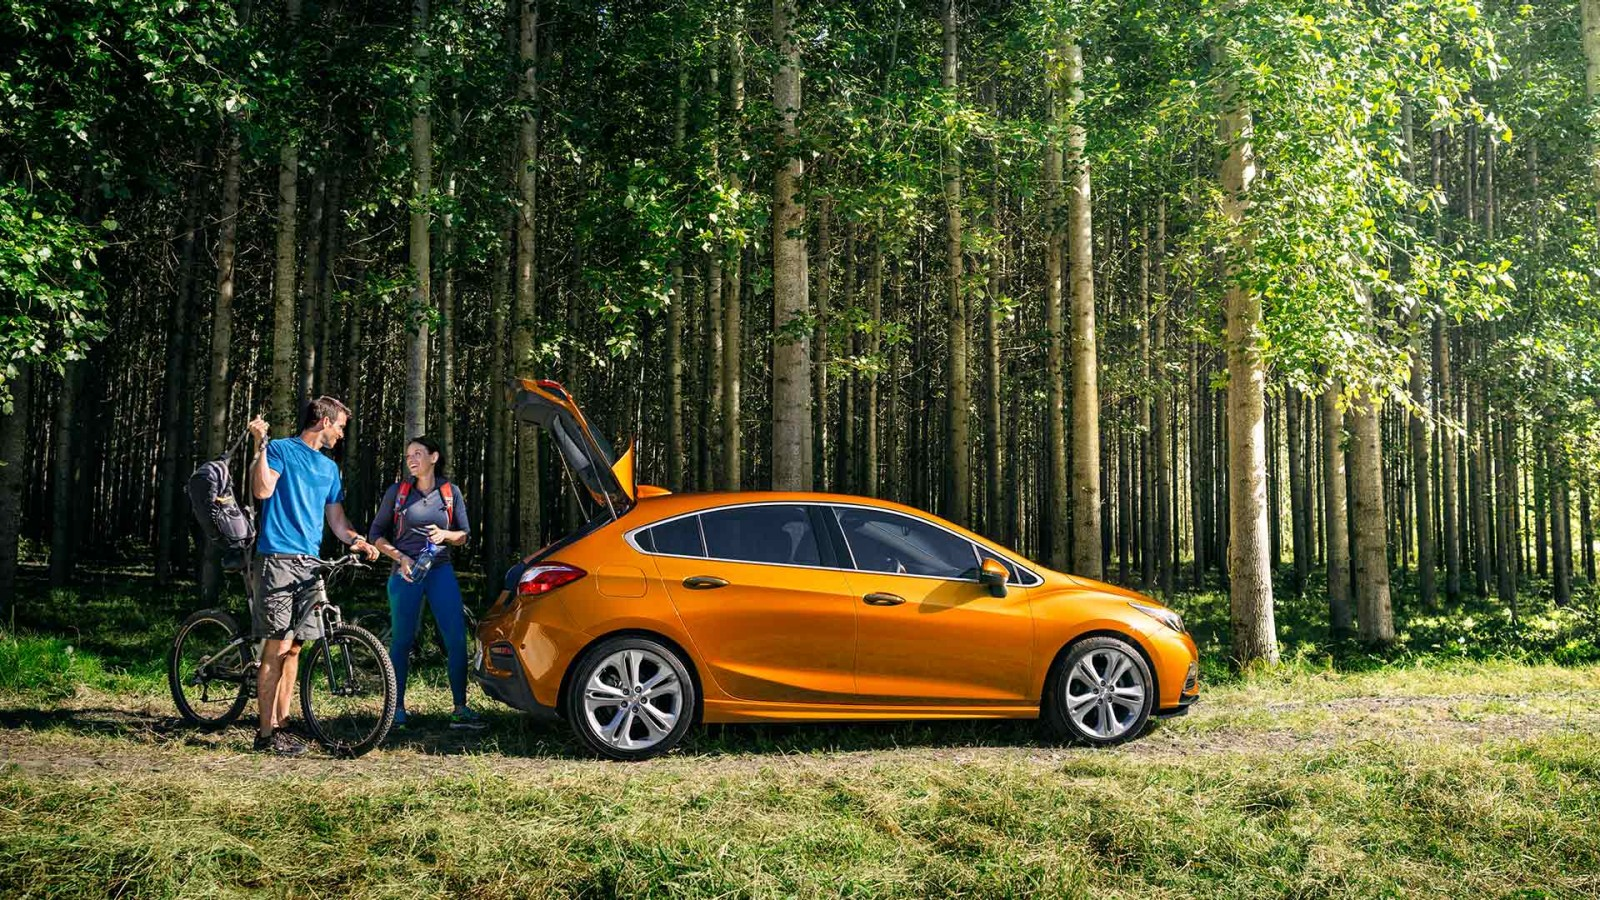 2017 chevy cruze for sale near centennial, co - medved castle rock